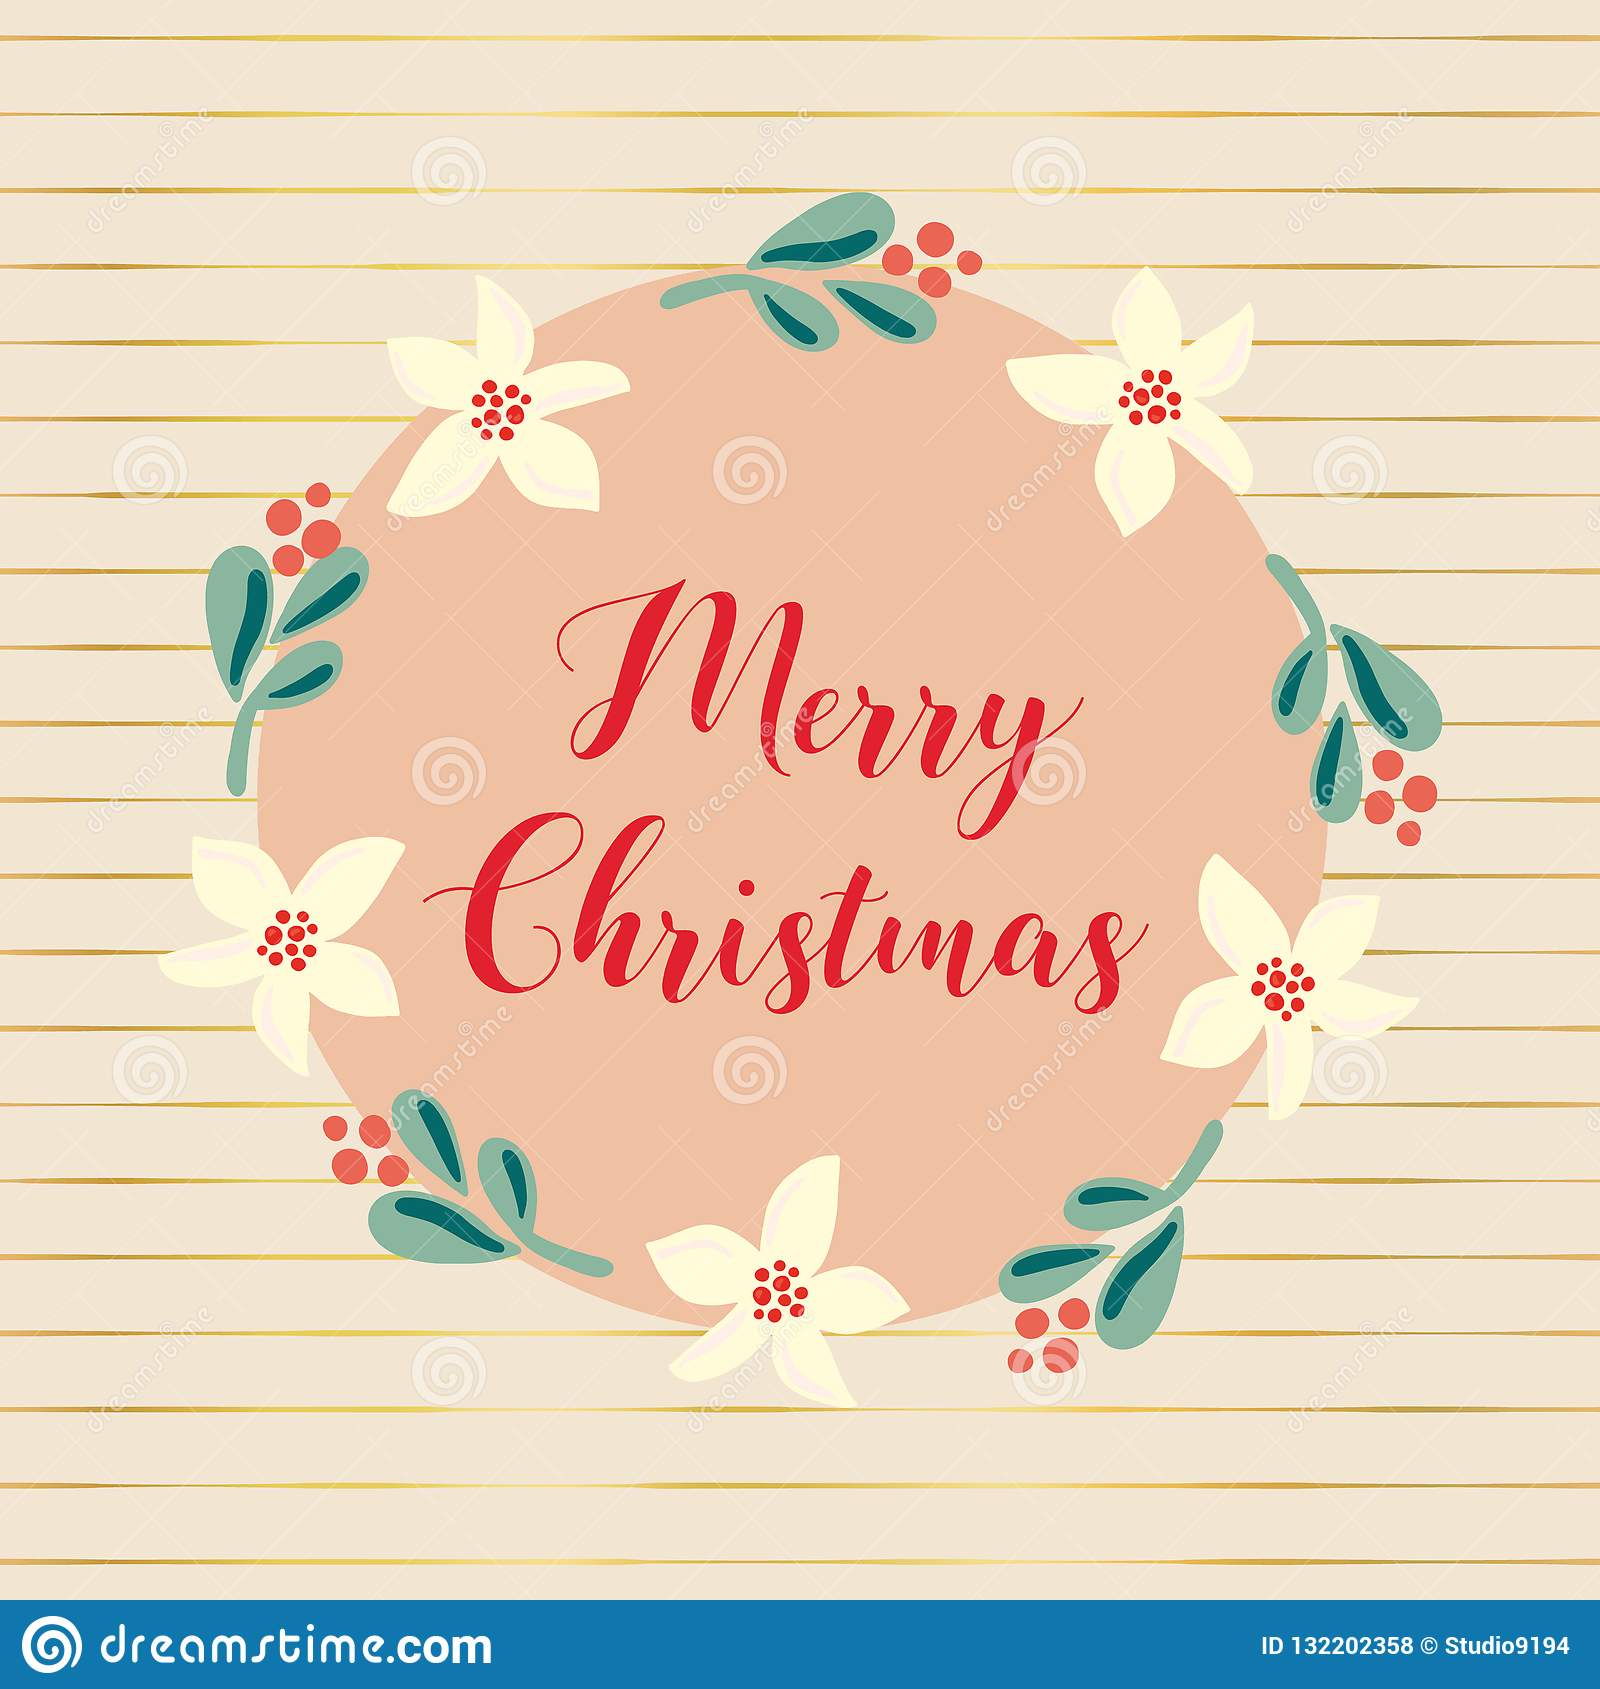 Hand drawn vector Merry Christmas holiday illustration. Mistletoe flower wreath. For poster, blog, banners, Christmas greeting